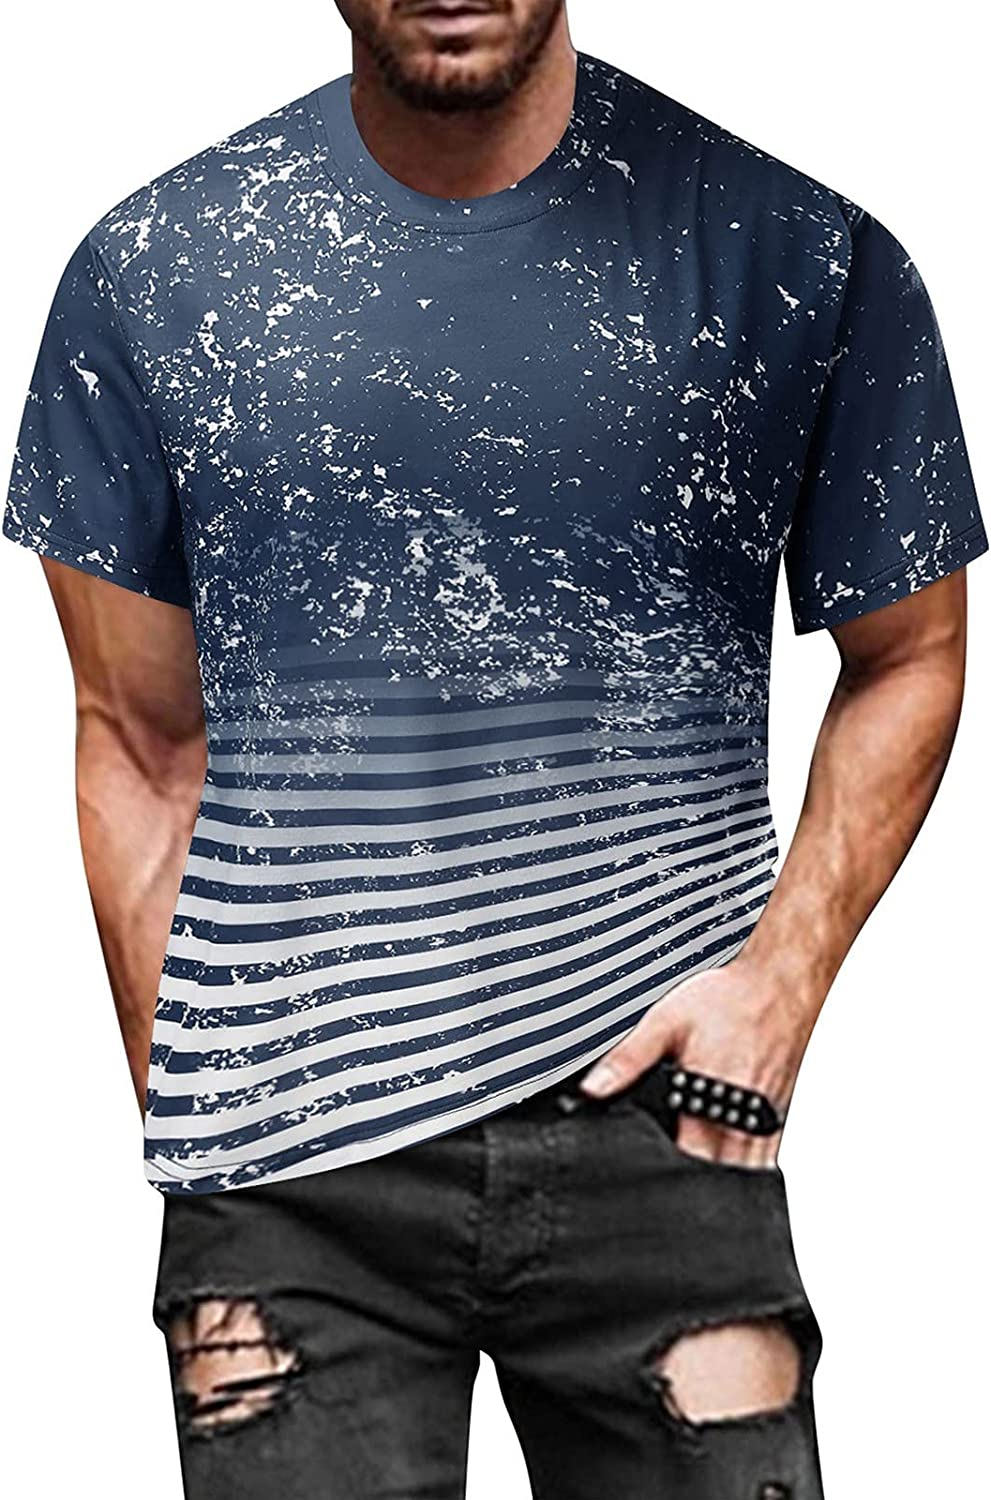 FUNEY Fashion T-Shirt for Men Muscle Gym Workout Athletic Shirt Pleated Raglan Sleeve Bodybuilding Cotton Tee Shirt Top